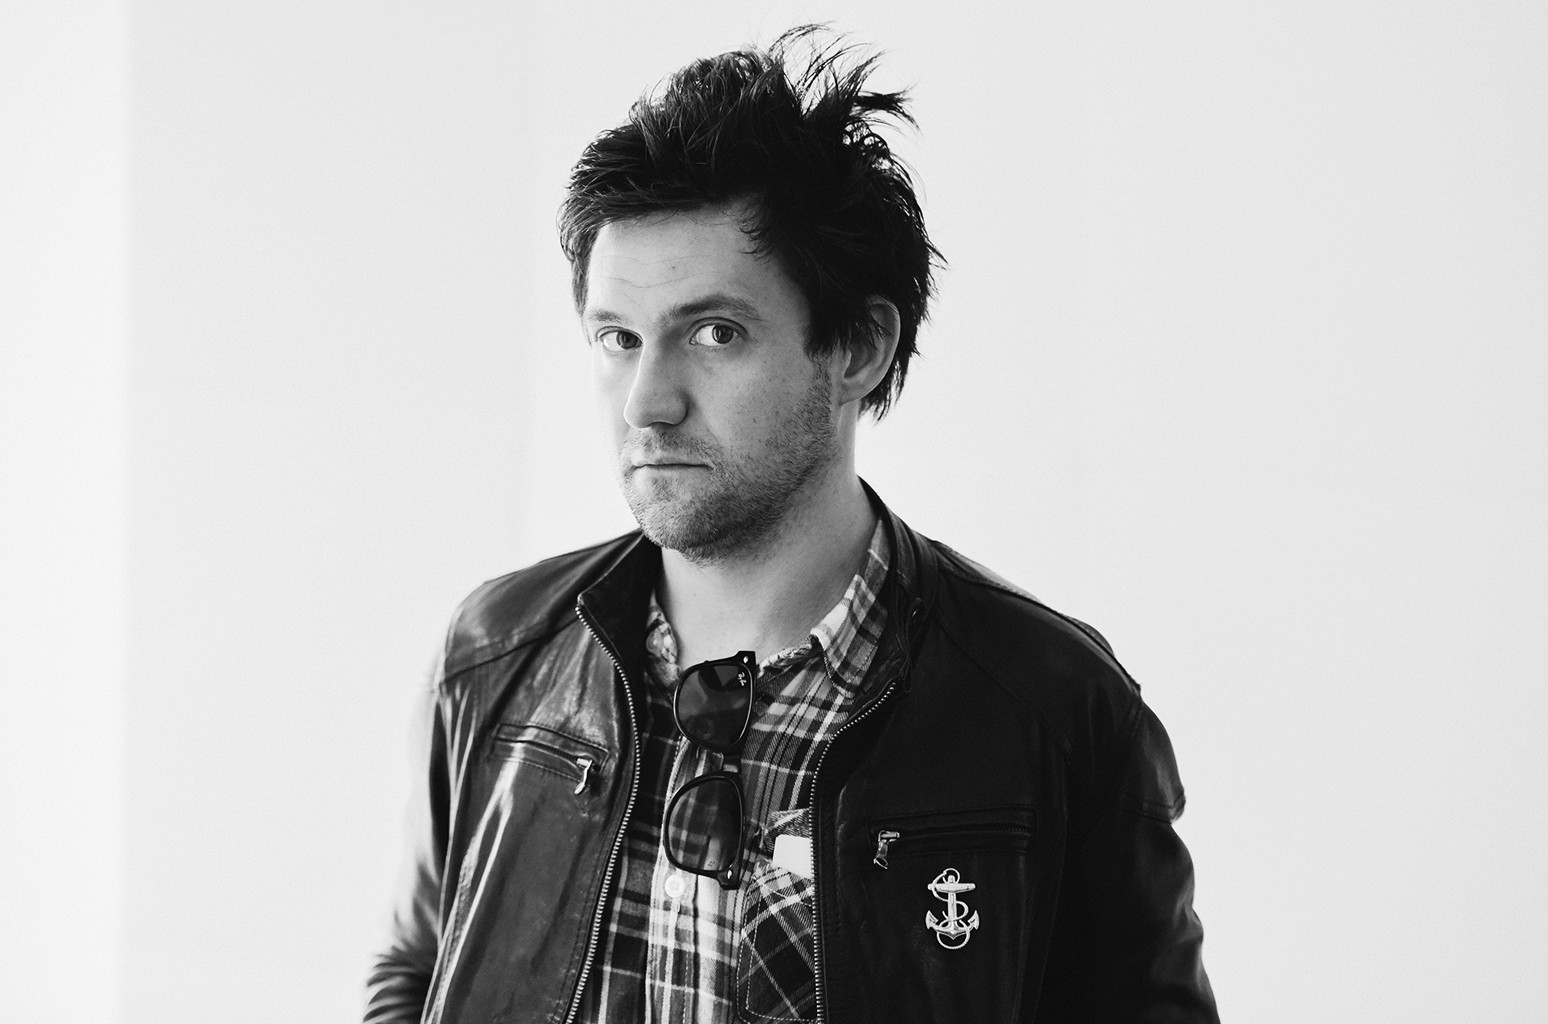 Conor Oberst poses for a portrait at SiriusXM Studio on Oct. 12, 2016 in New York City.